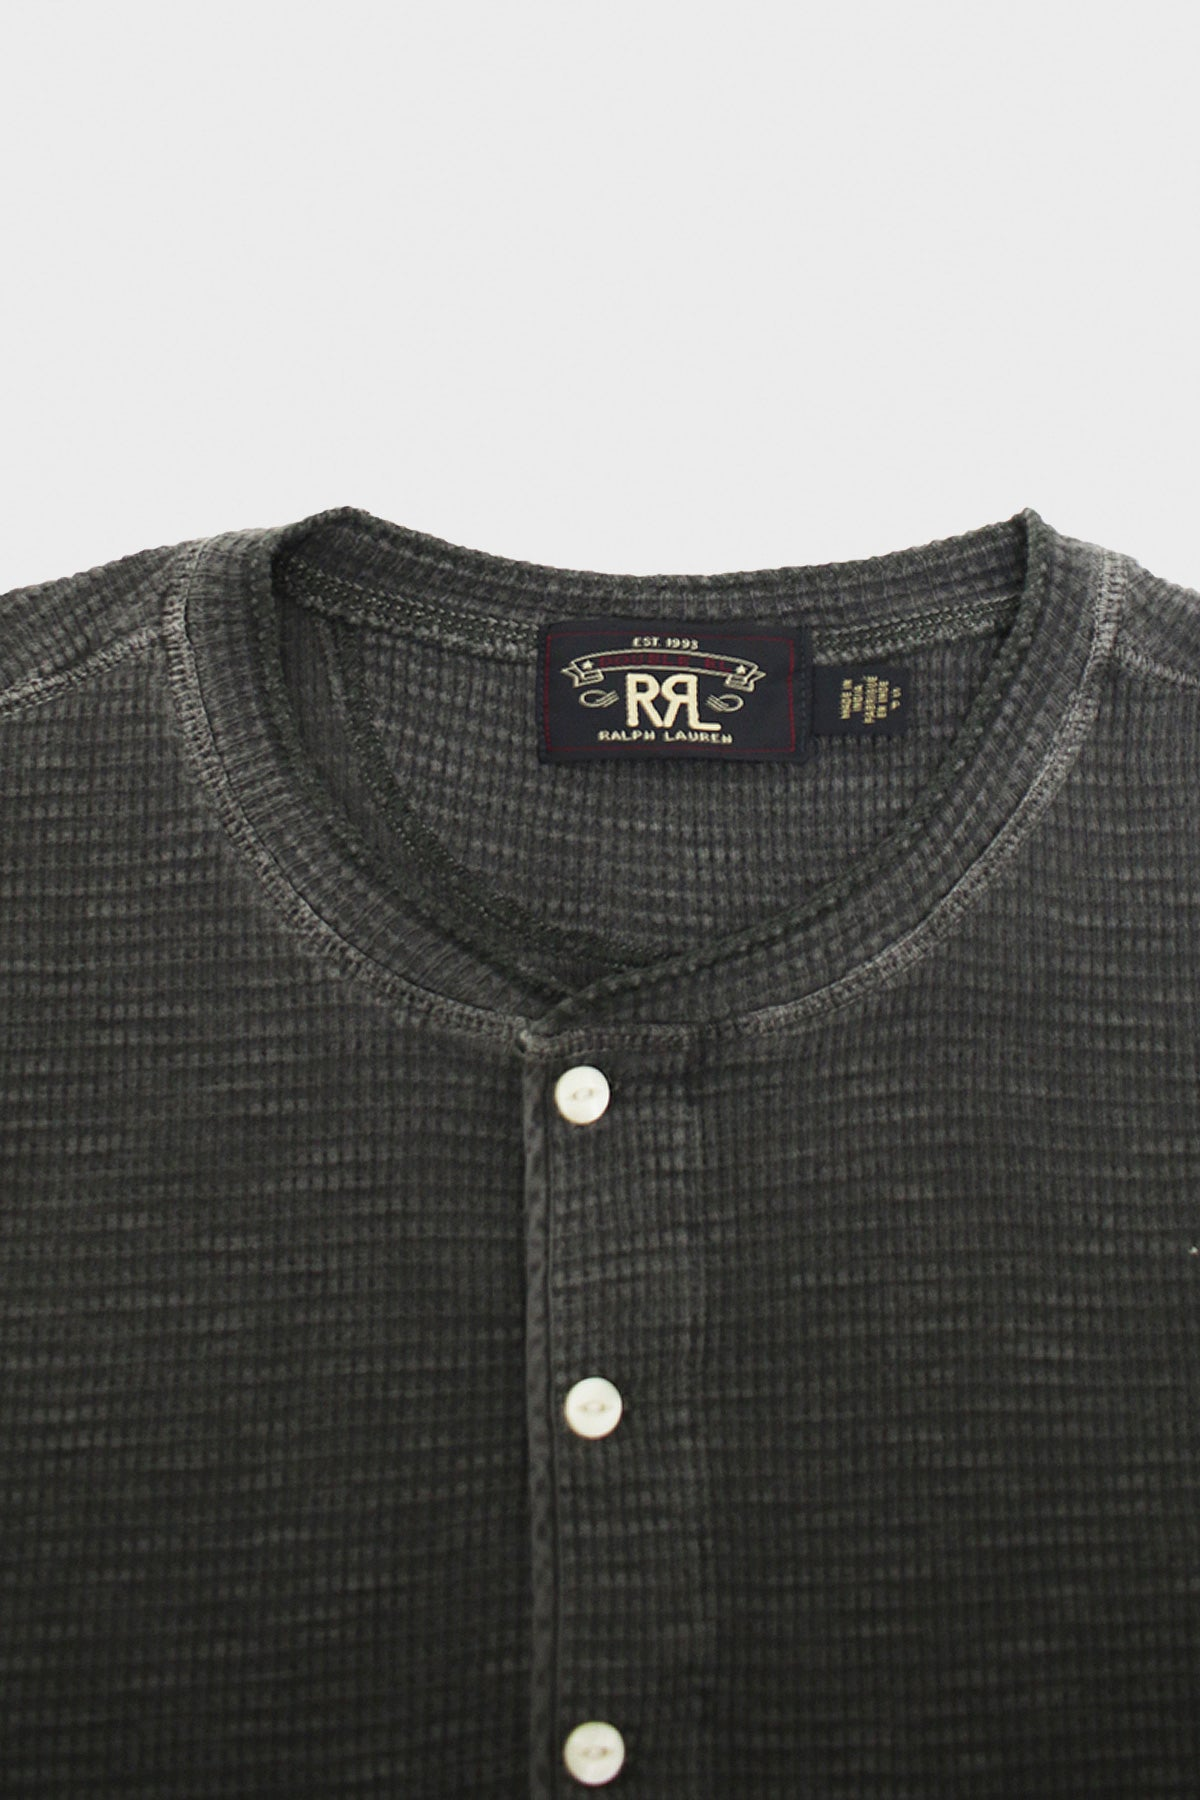 RRL - Short Sleeve Henley - Faded Black - Canoe Club